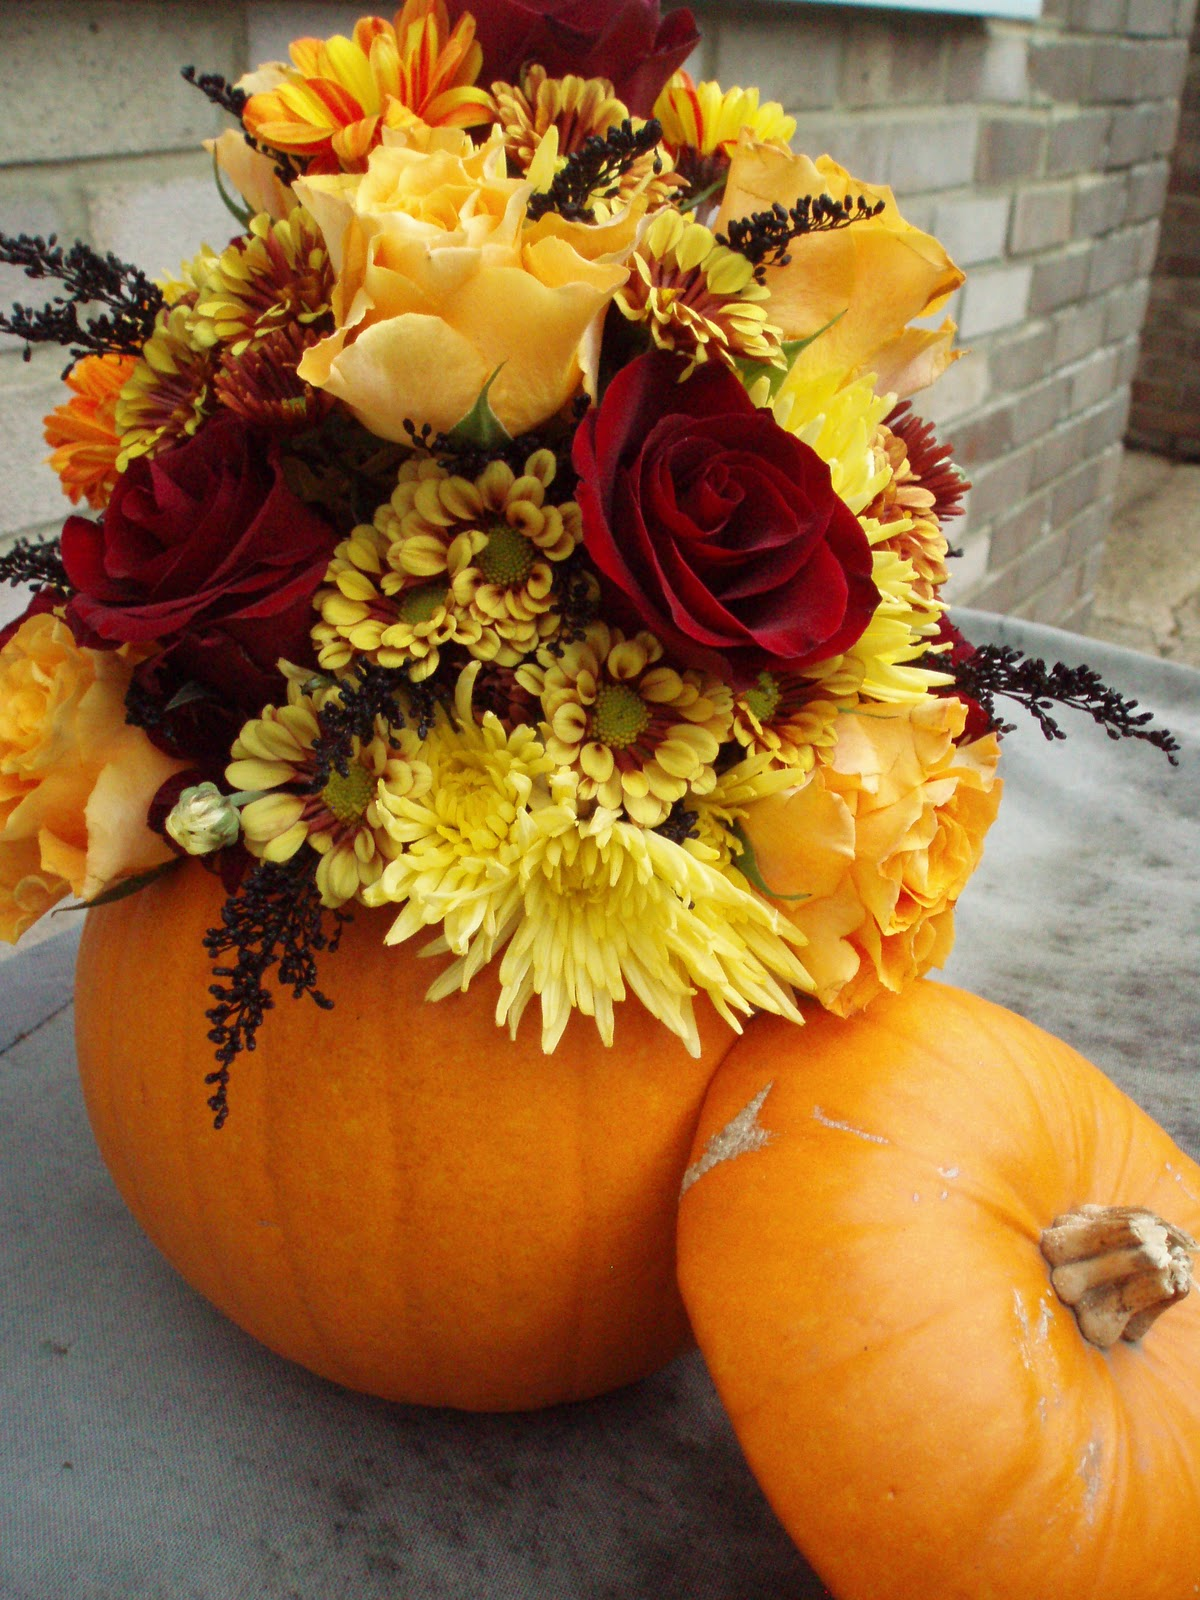 Fall Pumpkin Pictures   HD Wallpapers Lovely 1200x1600